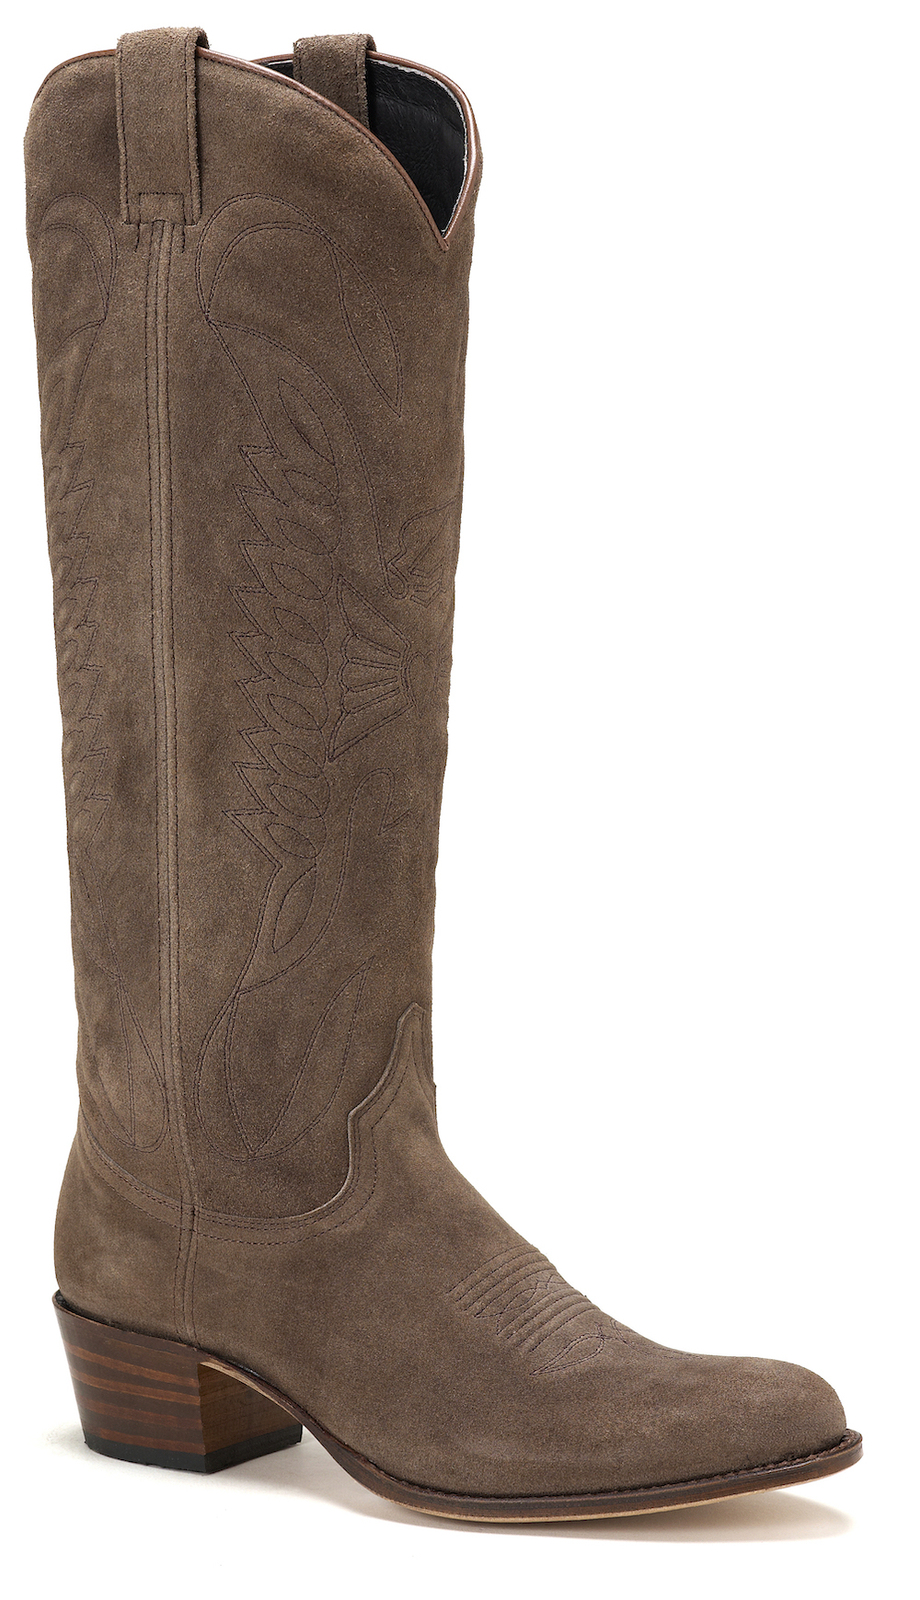 Womens Sendra 8840 Western Fashion